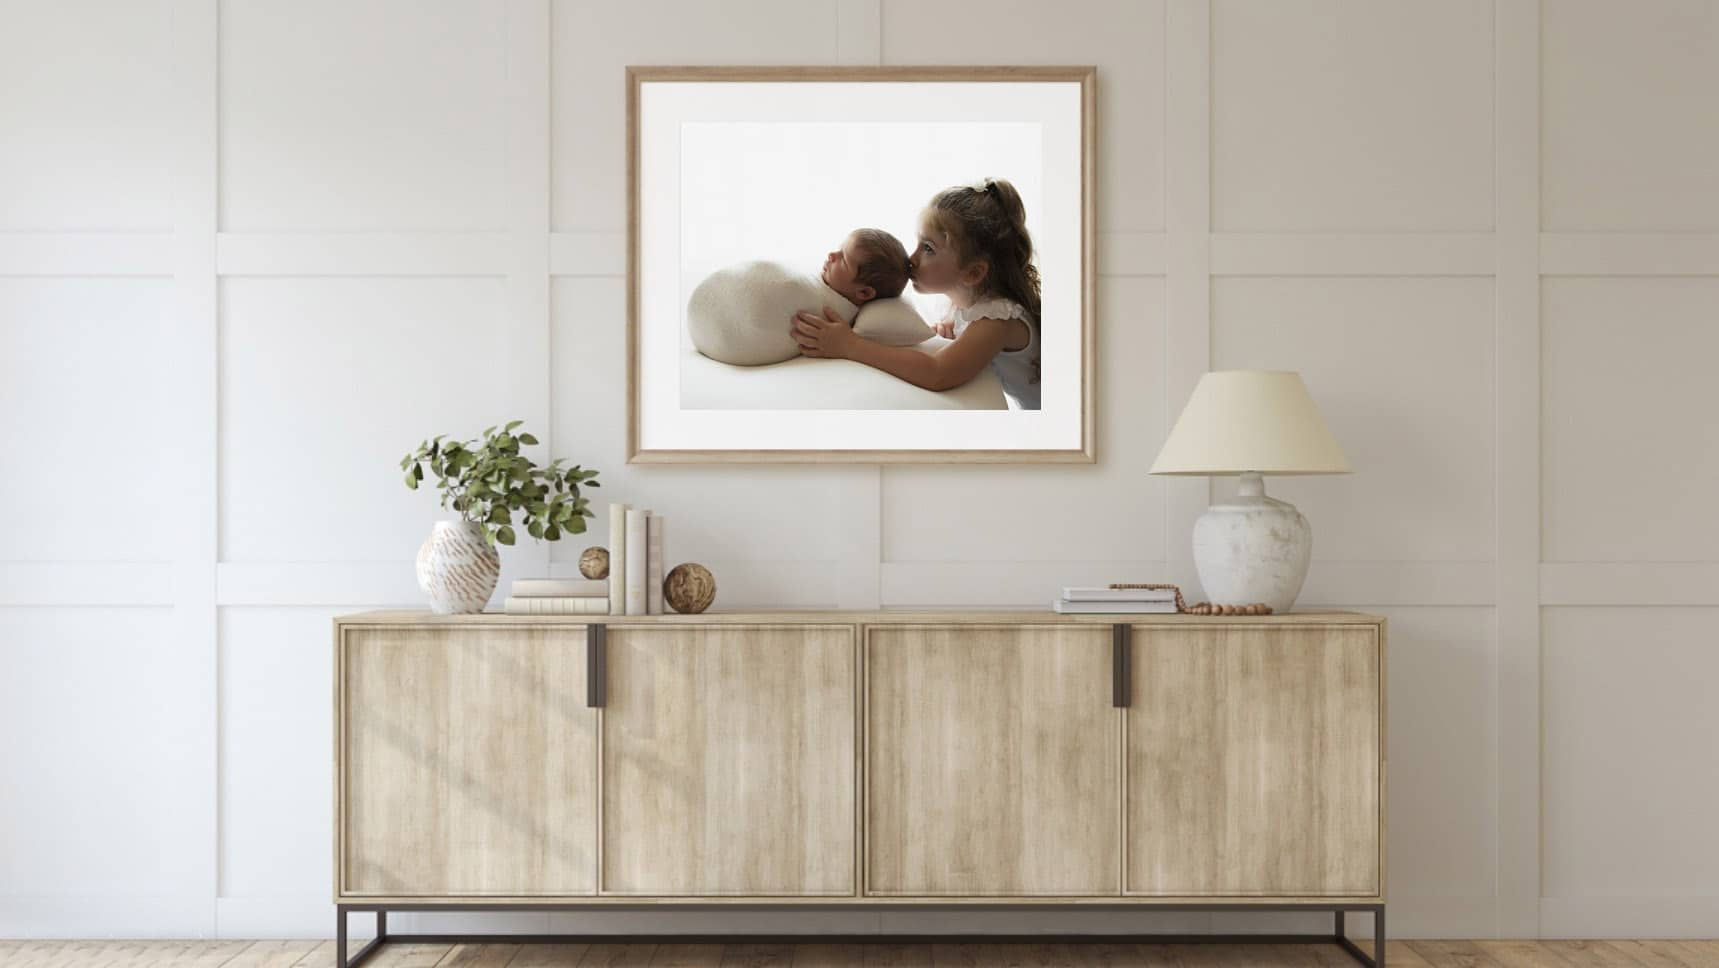 framed print on the wall